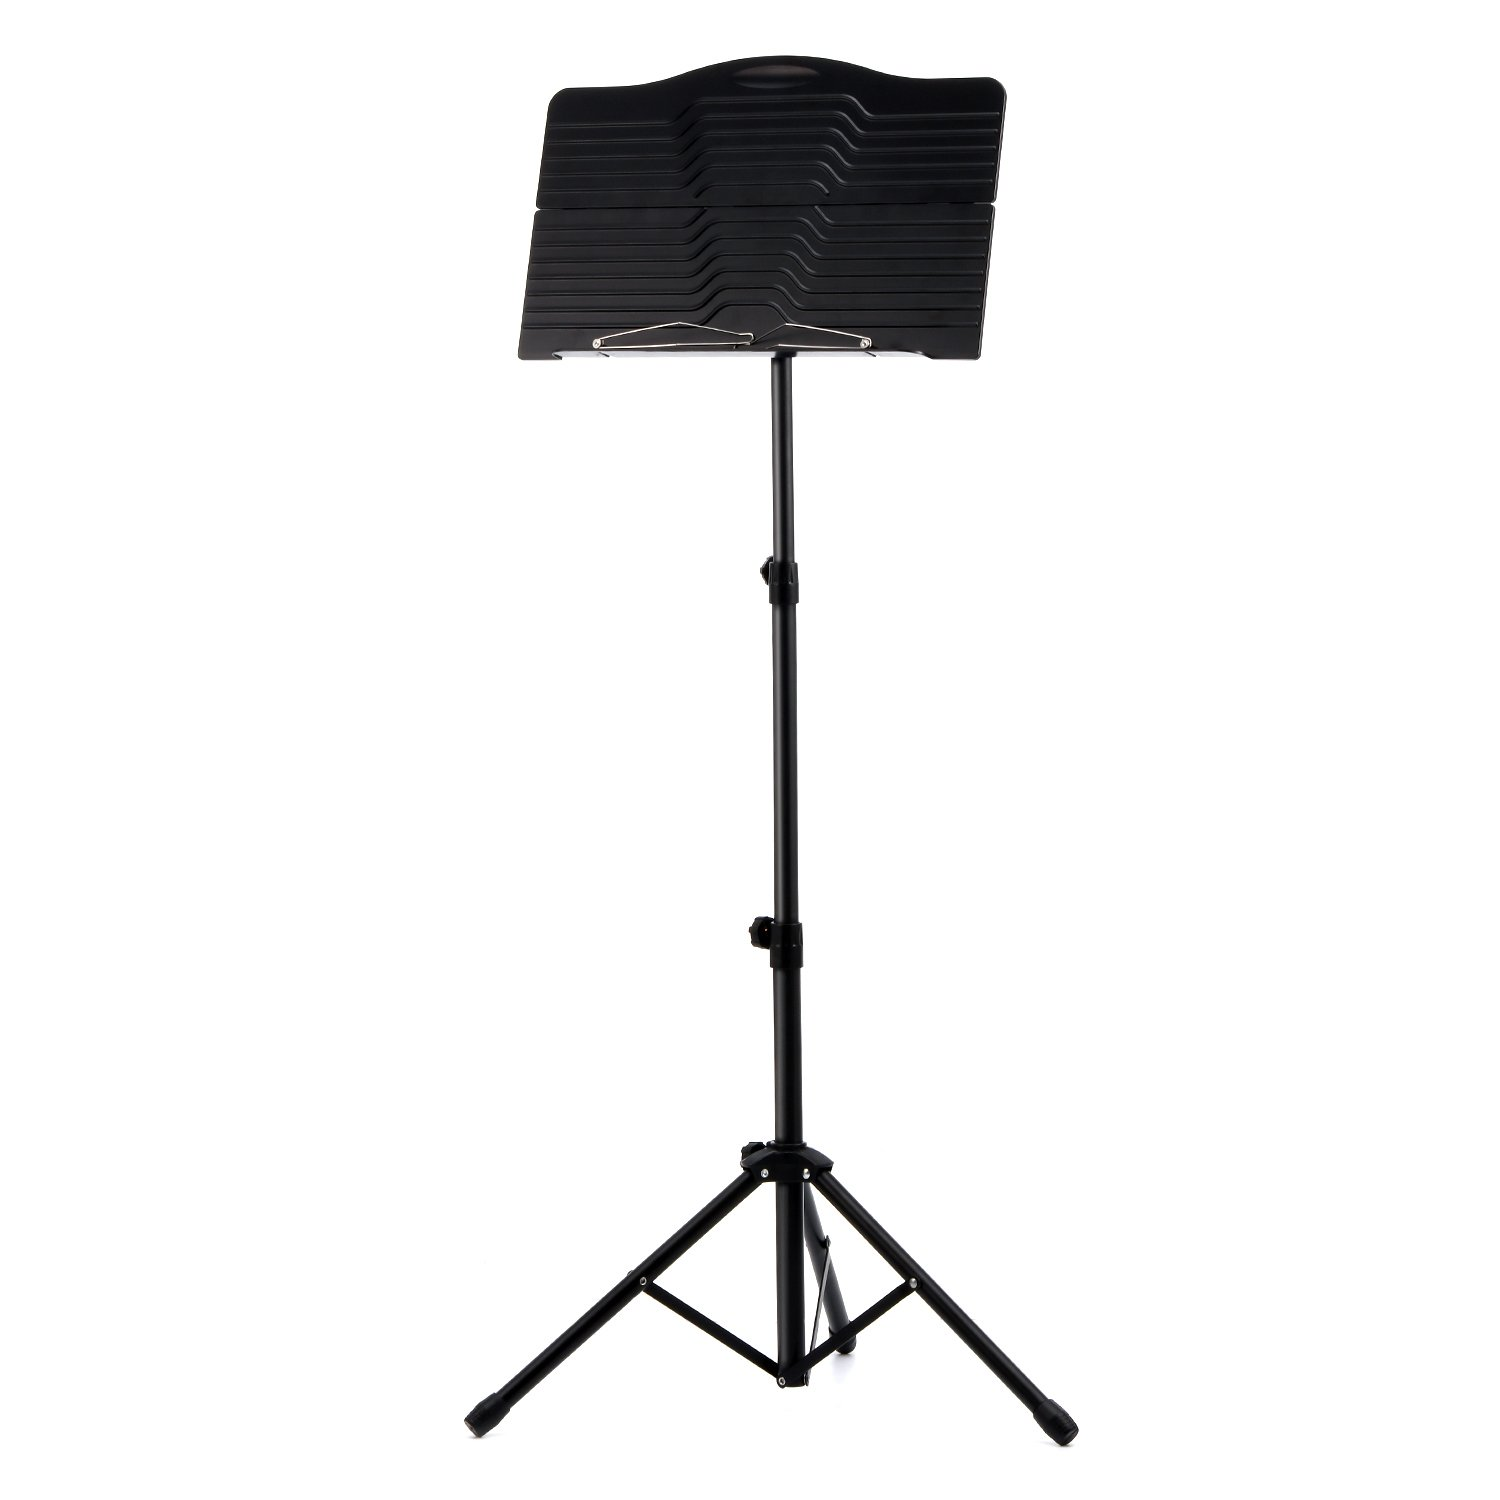 Donner Sheet Music Stand DMS-1 Folding Travel Metal Music Stand With Carrying Bag by Donner (Image #3)